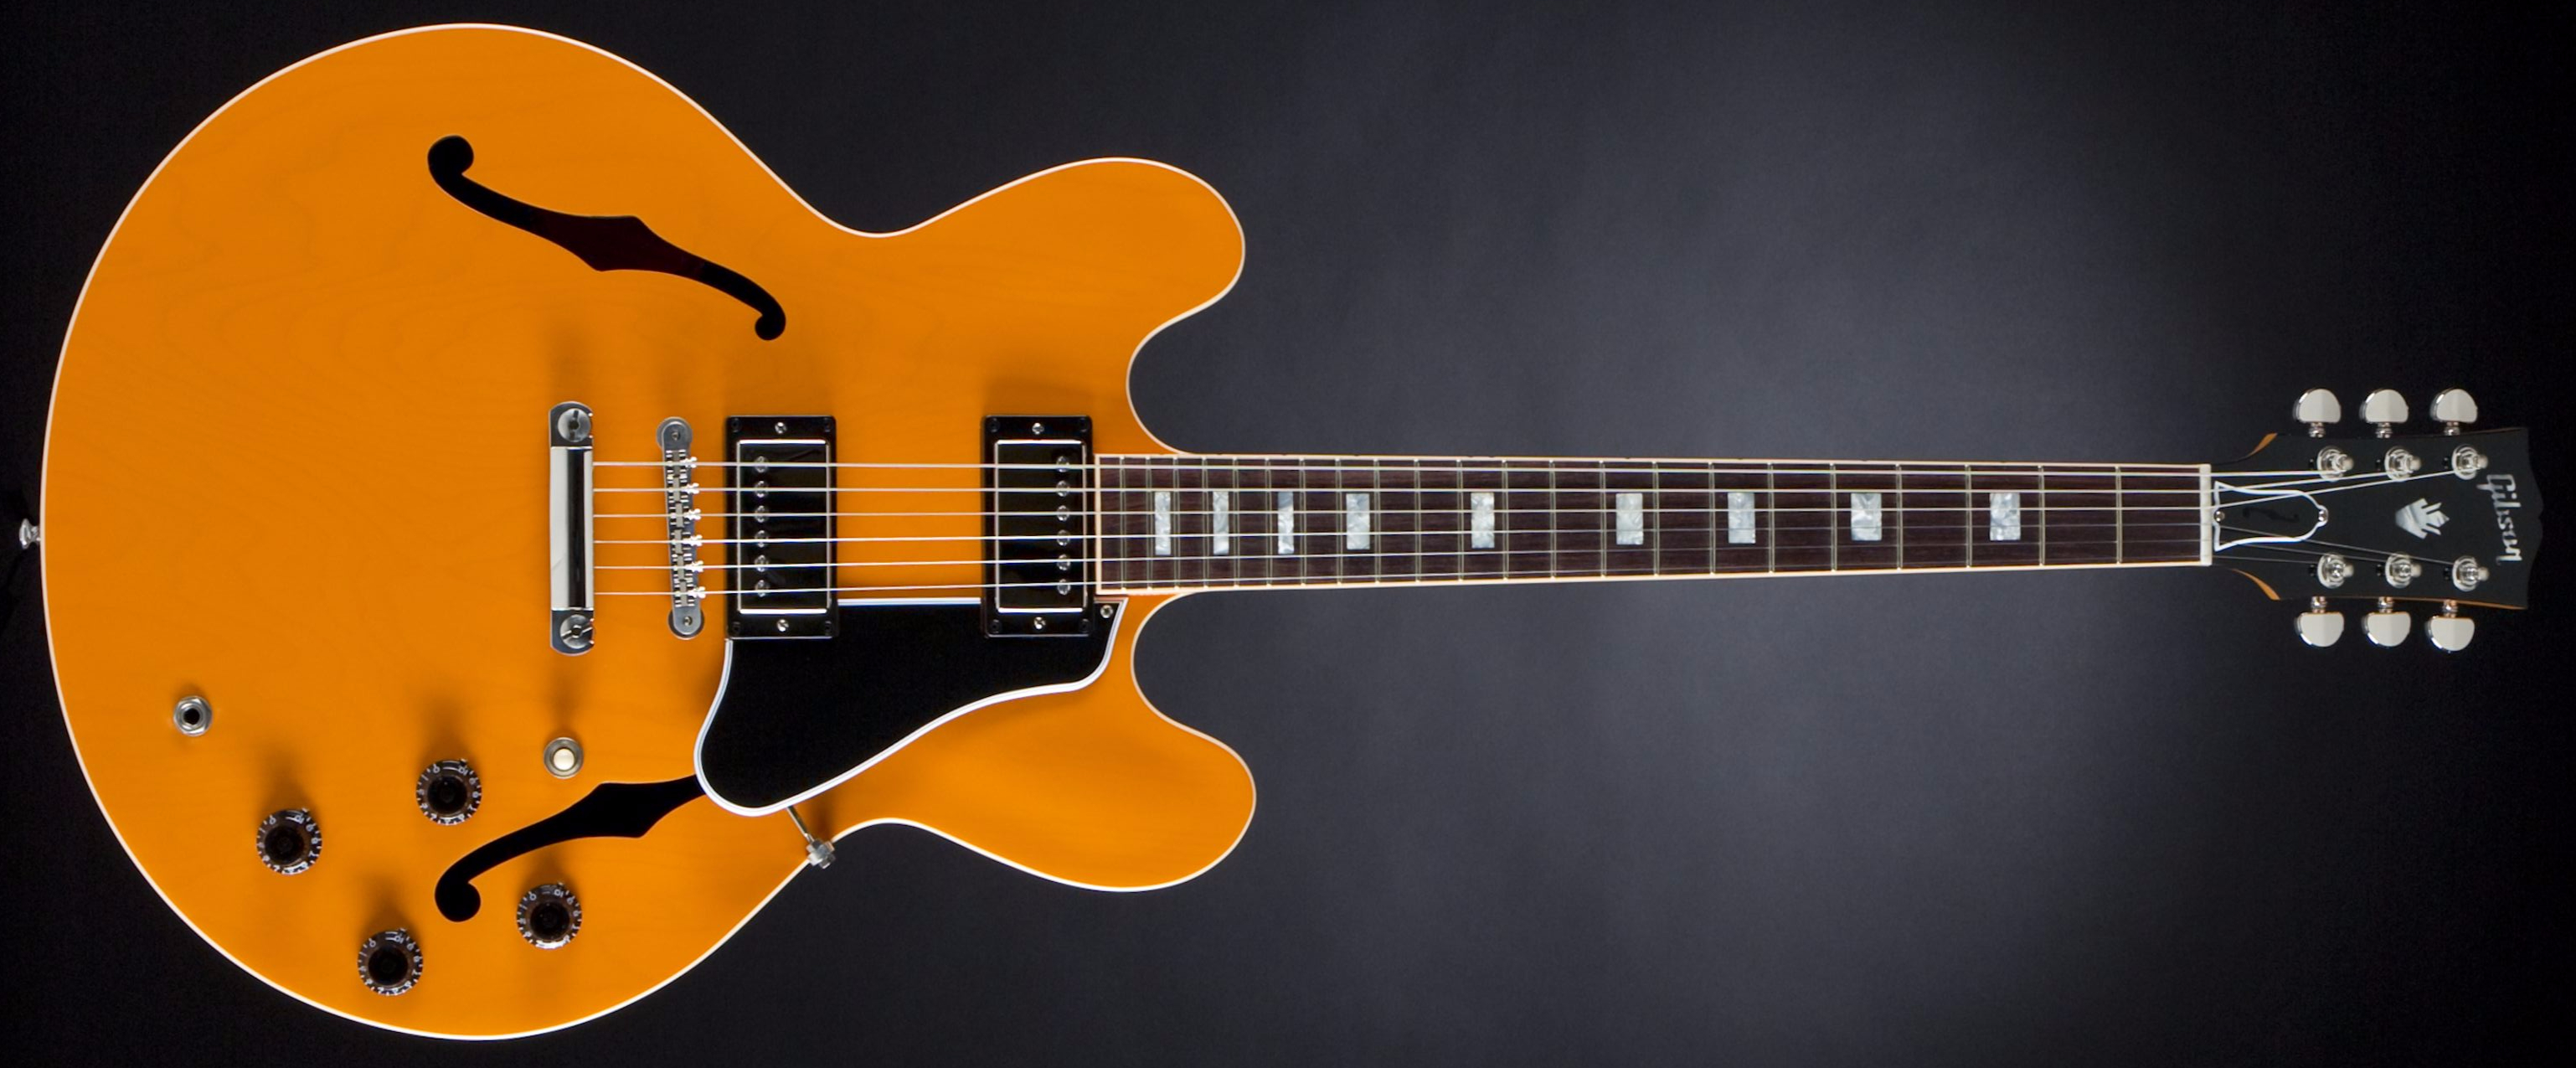 GIBSON ES-335 Tascam Orange